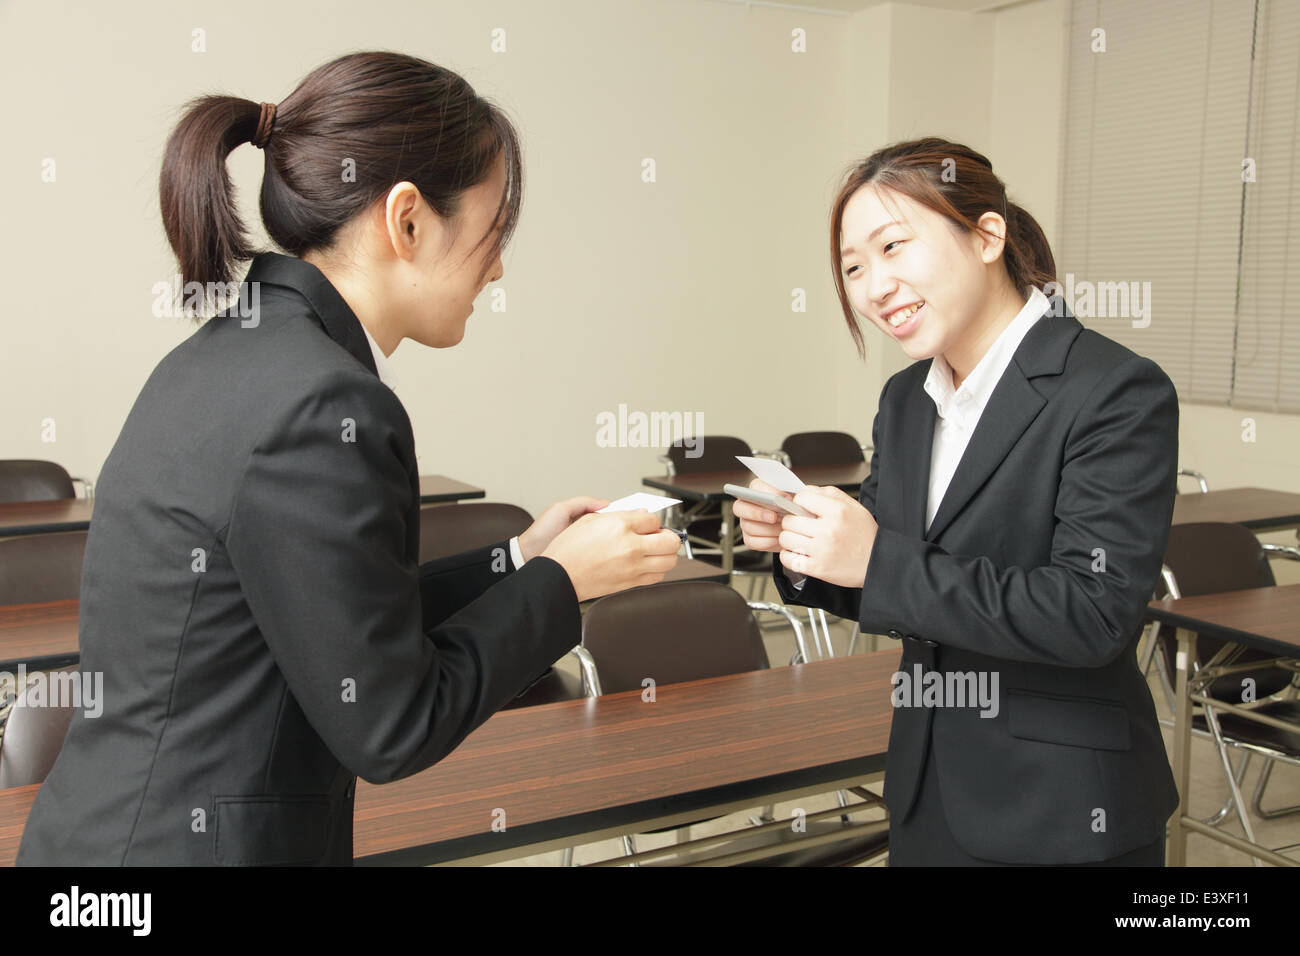 Japanese business people exchanging business cards stock photo japanese business people exchanging business cards reheart Gallery